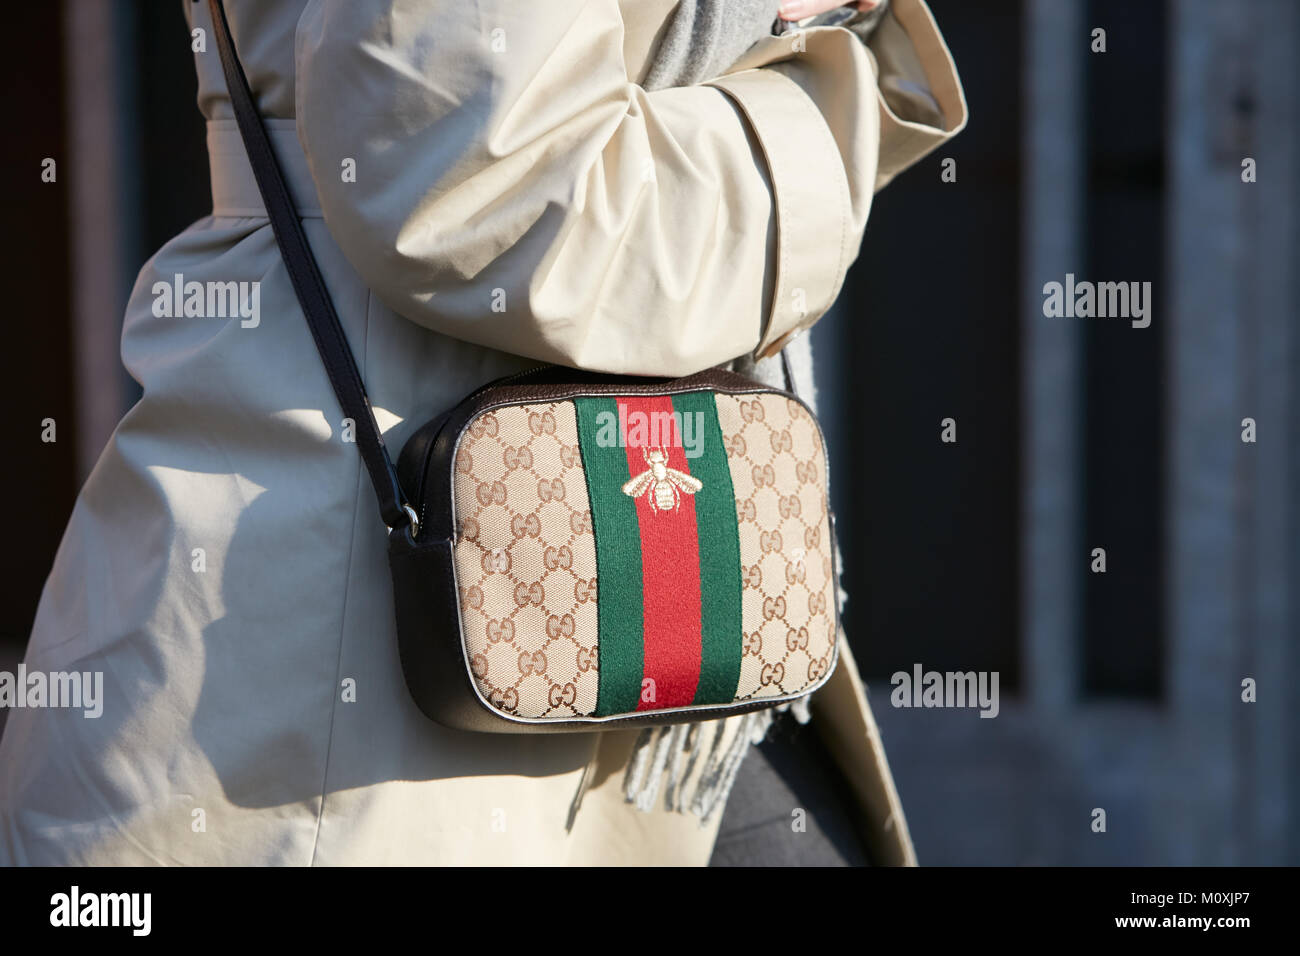 d6620d83b1e MILAN - JANUARY 13  Woman with Gucci bag with bee and green and red stripes before  Emporio Armani fashion show, Milan Fashion Week street style on Jan